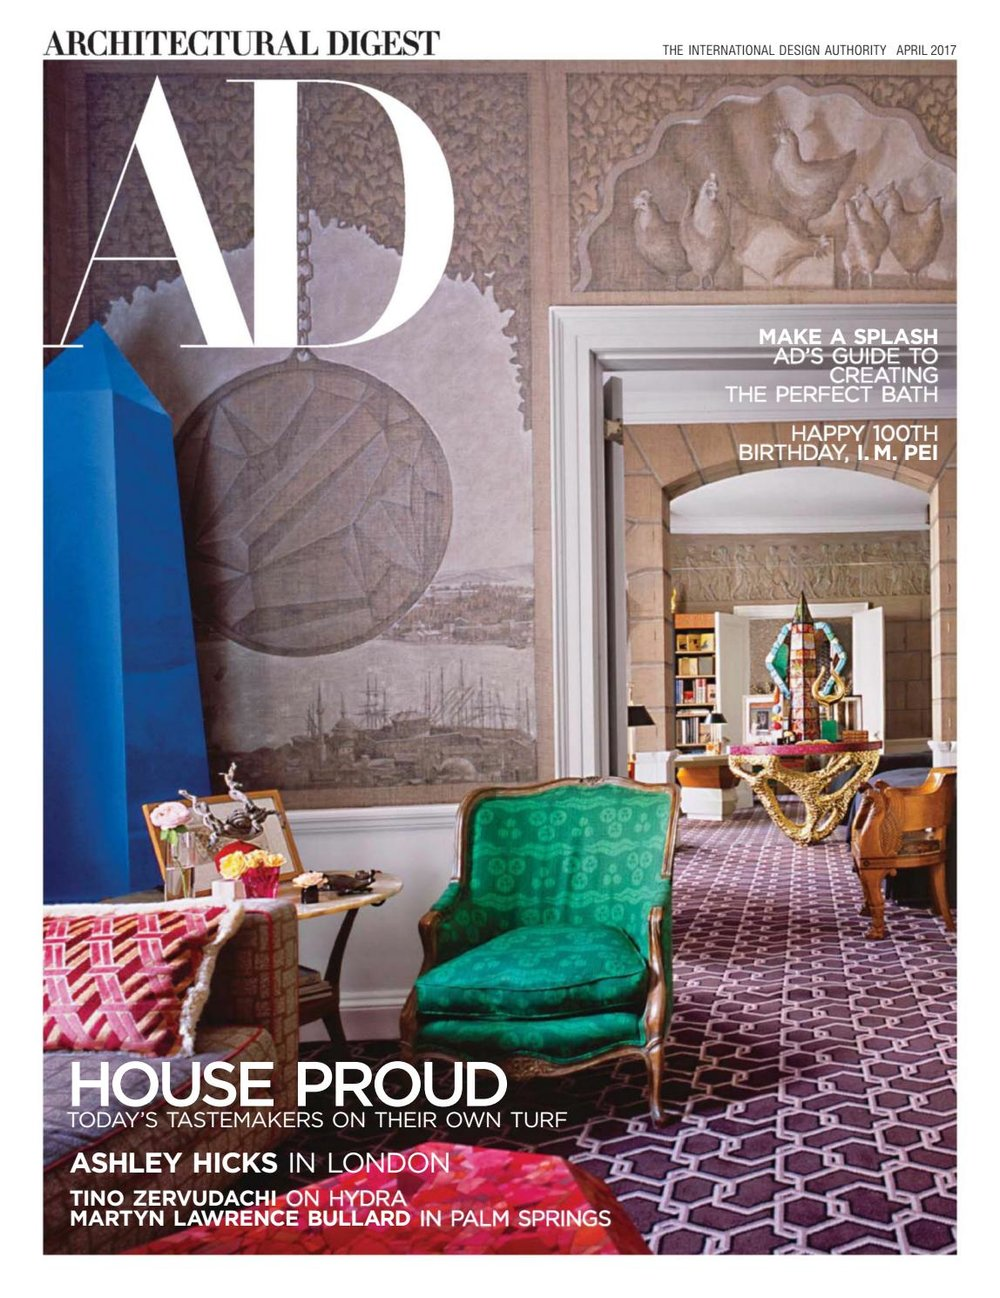 ARCHITECTURAL DIGEST APRIL 2017 ASHLEY HICKS